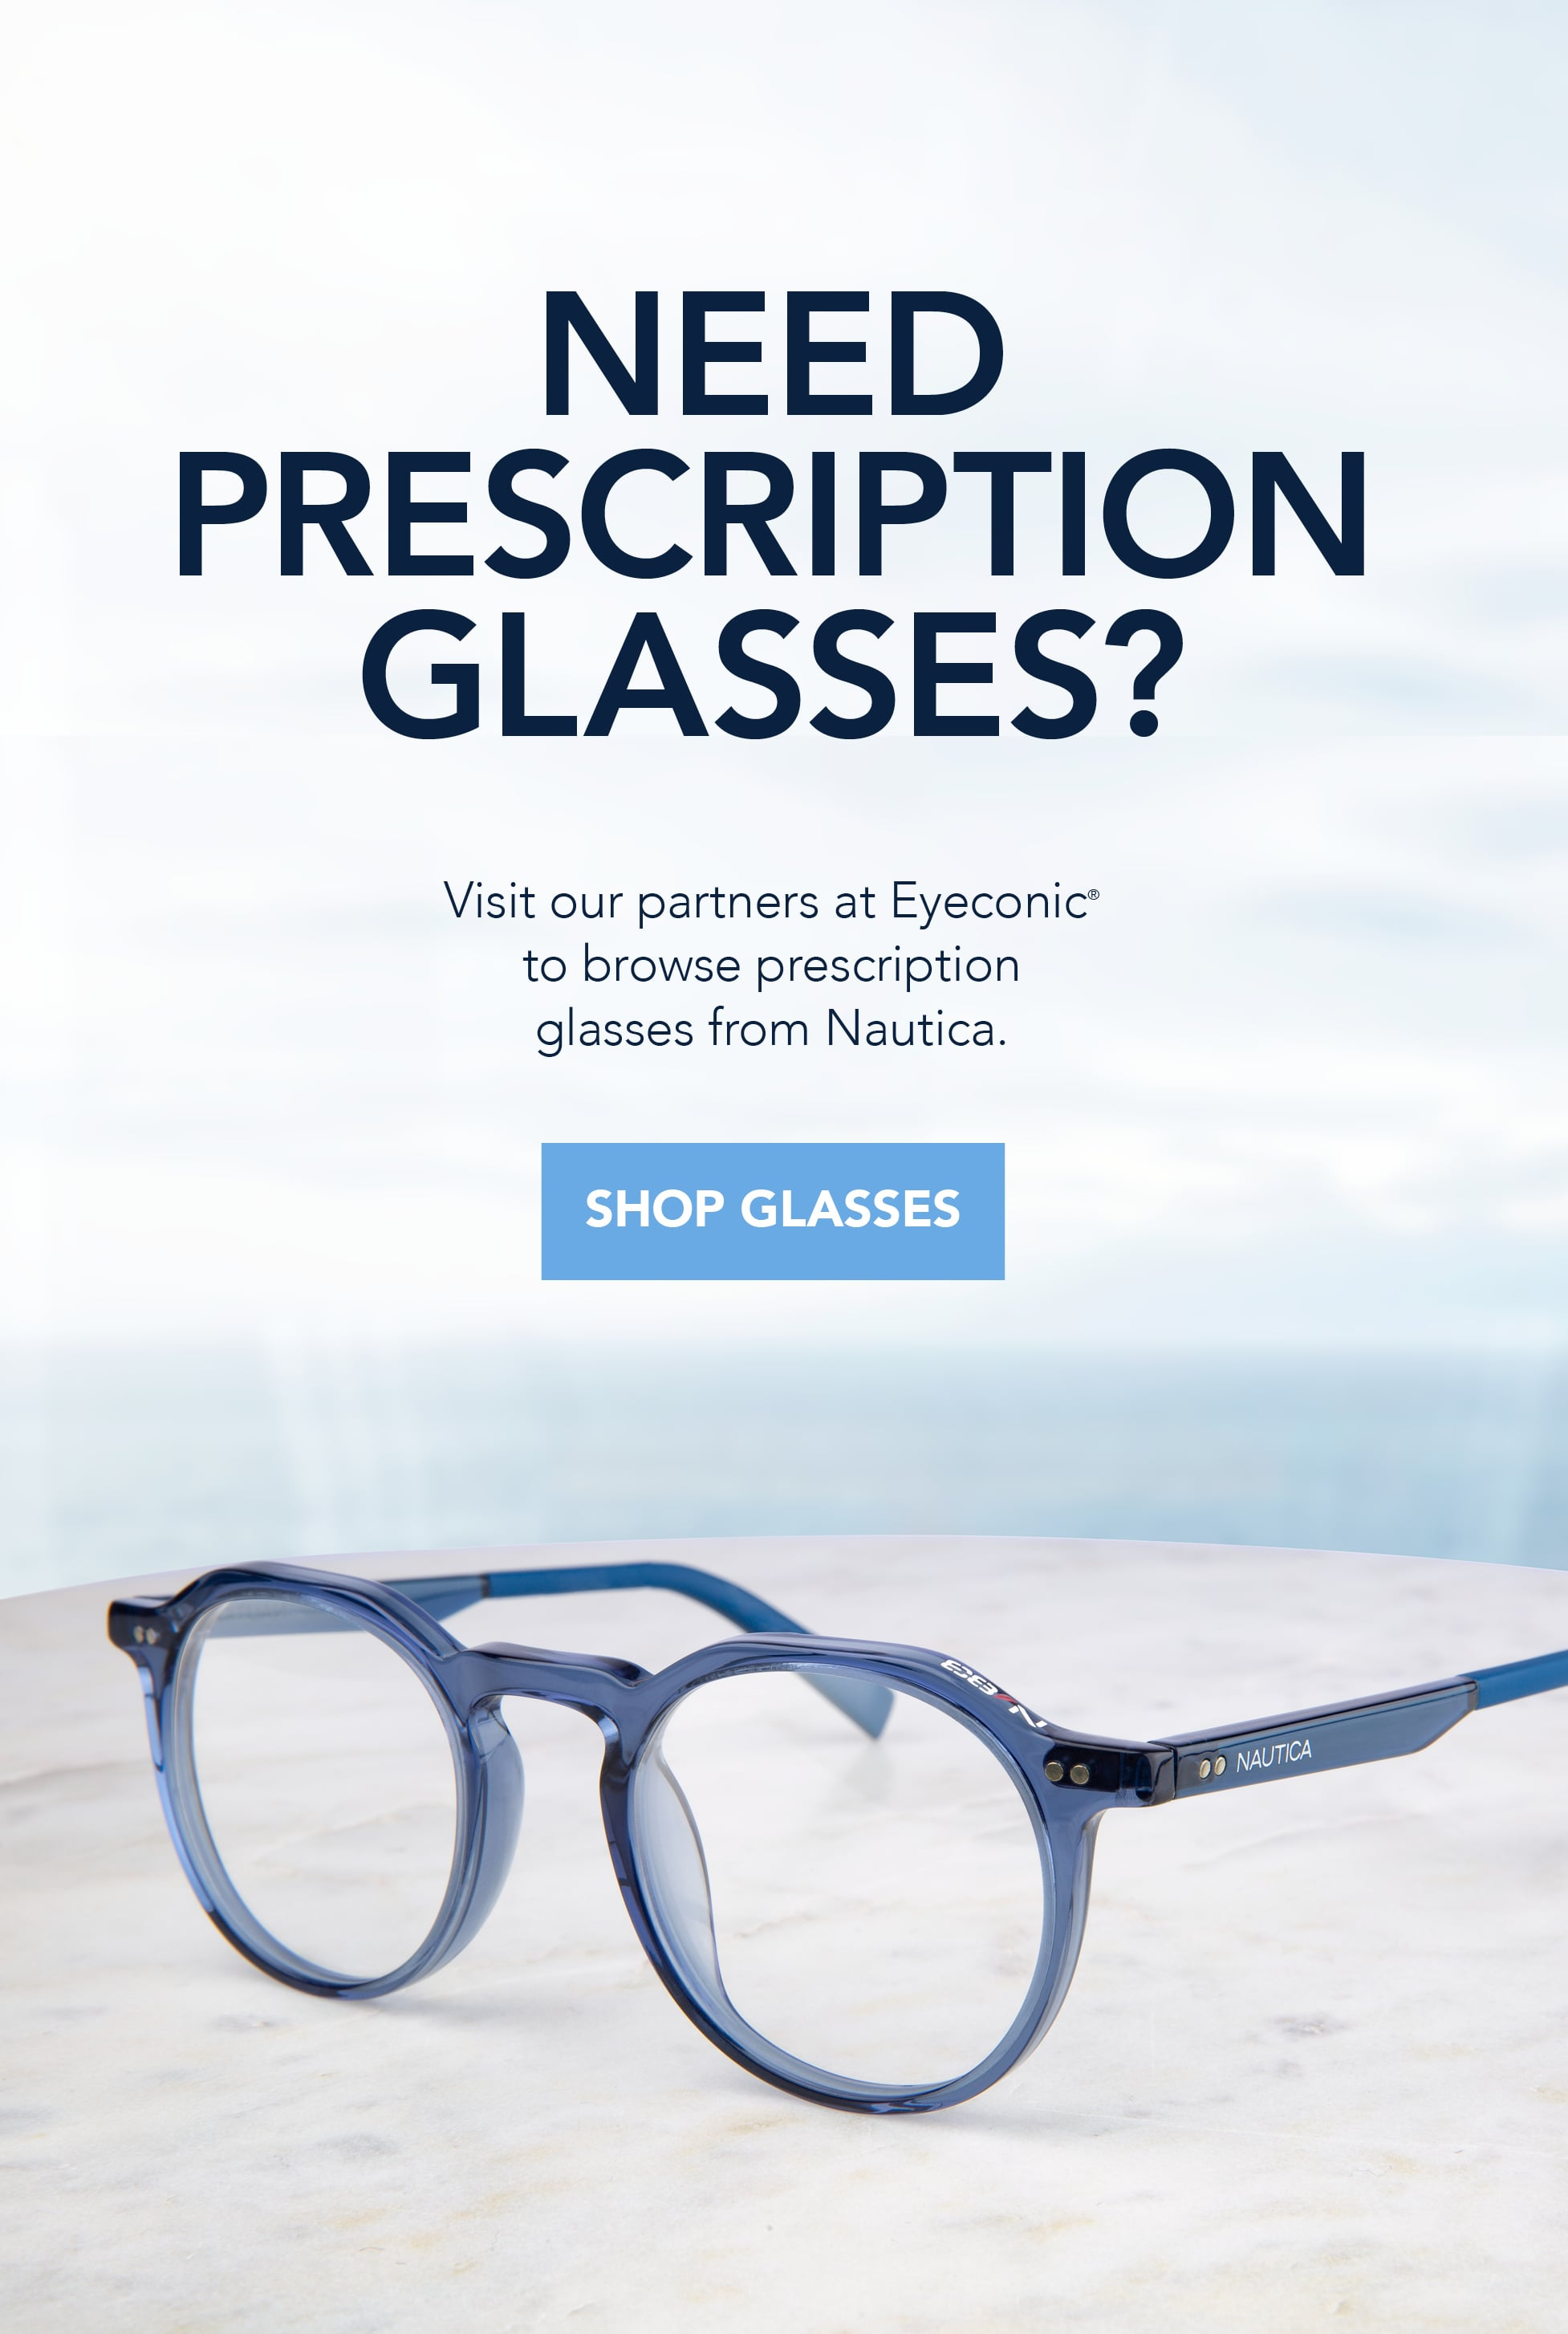 Need Prescription Glasses? Visit our partners at Eyeconic* to browse Prescription Glasses from Nautica